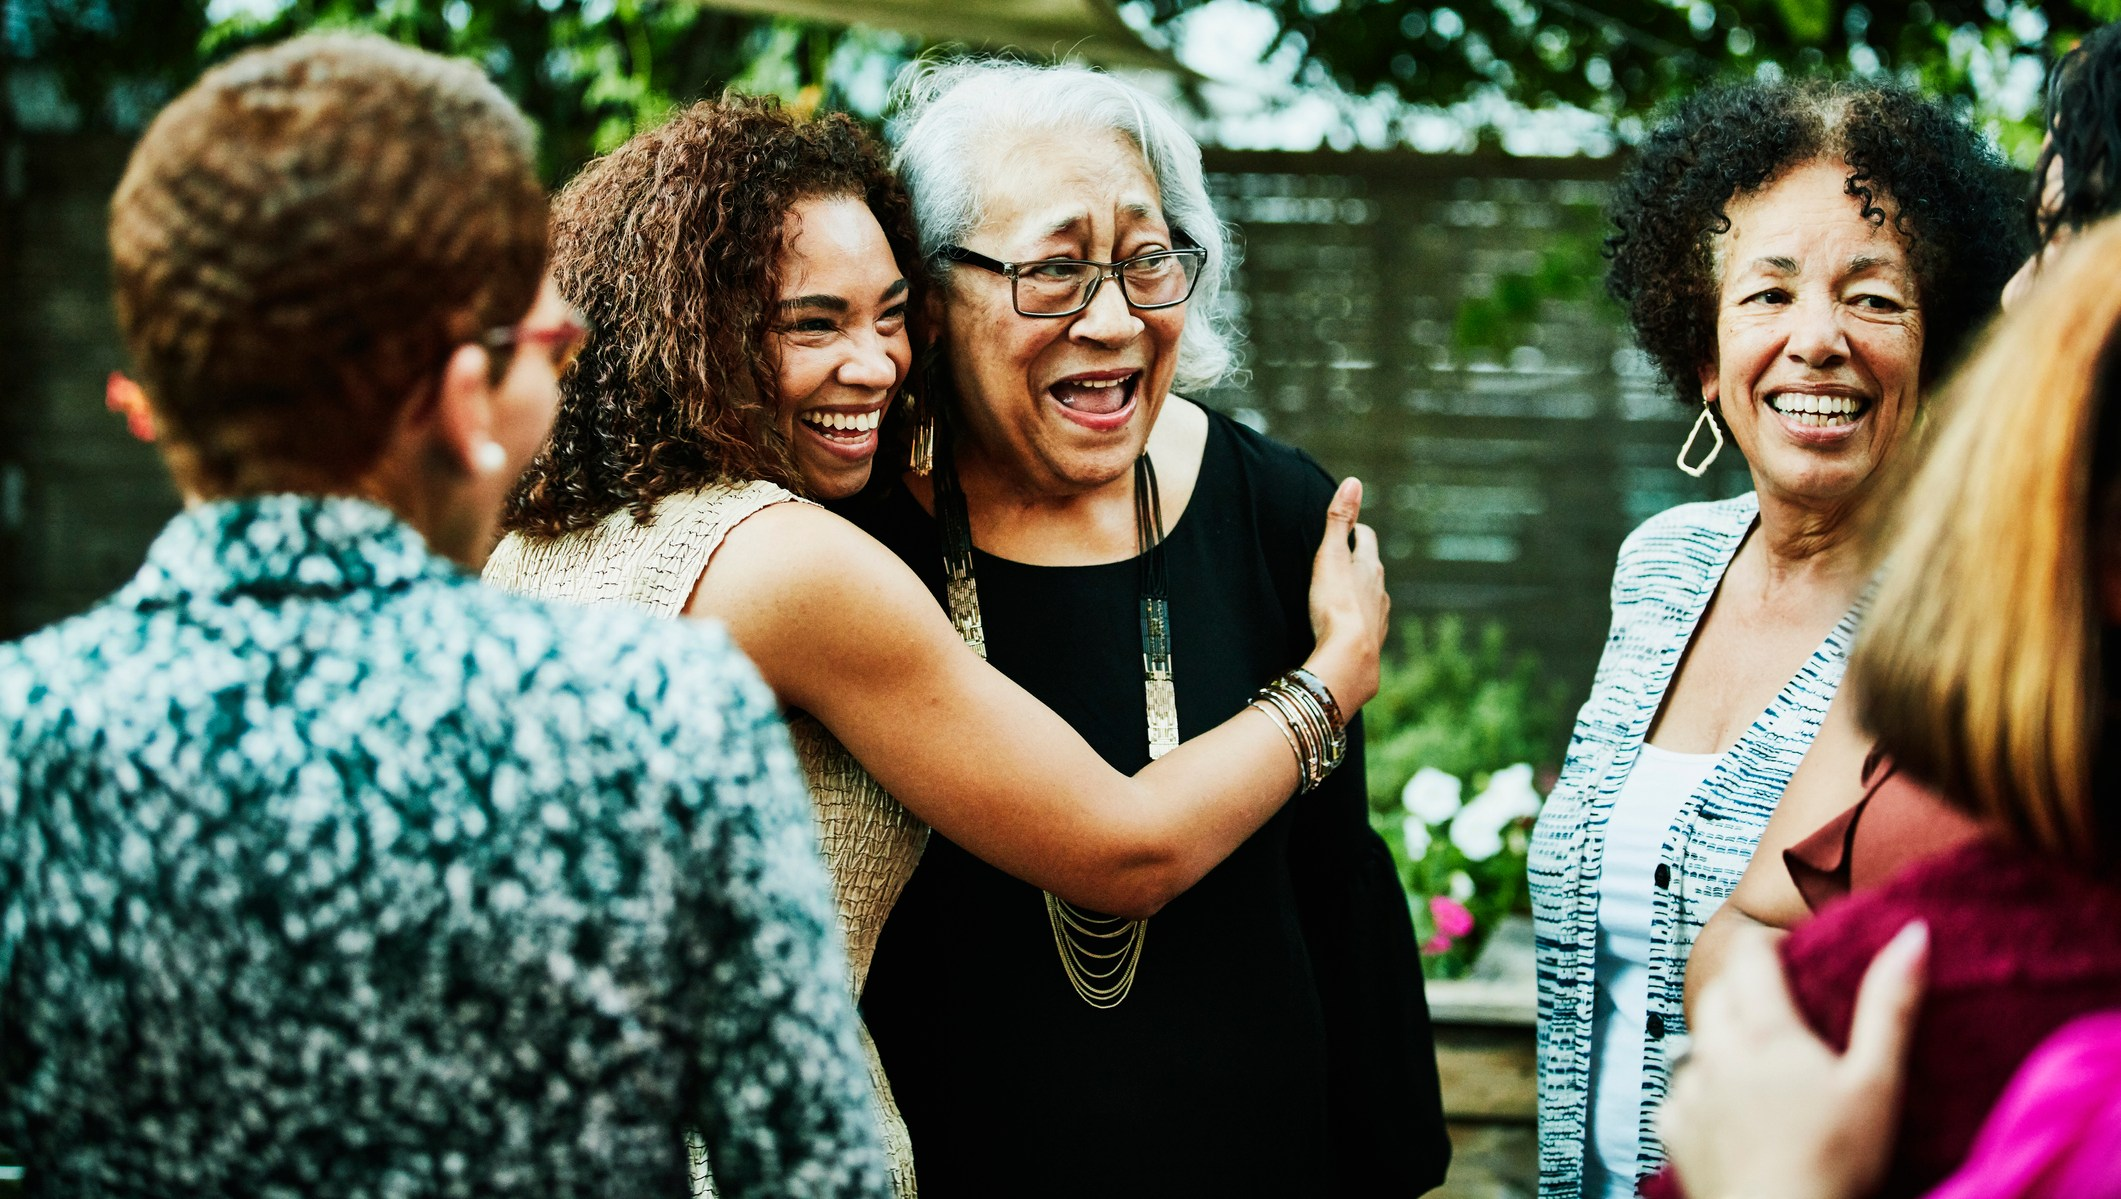 Mature daughter embracing senior mother after outdoor family dinner party